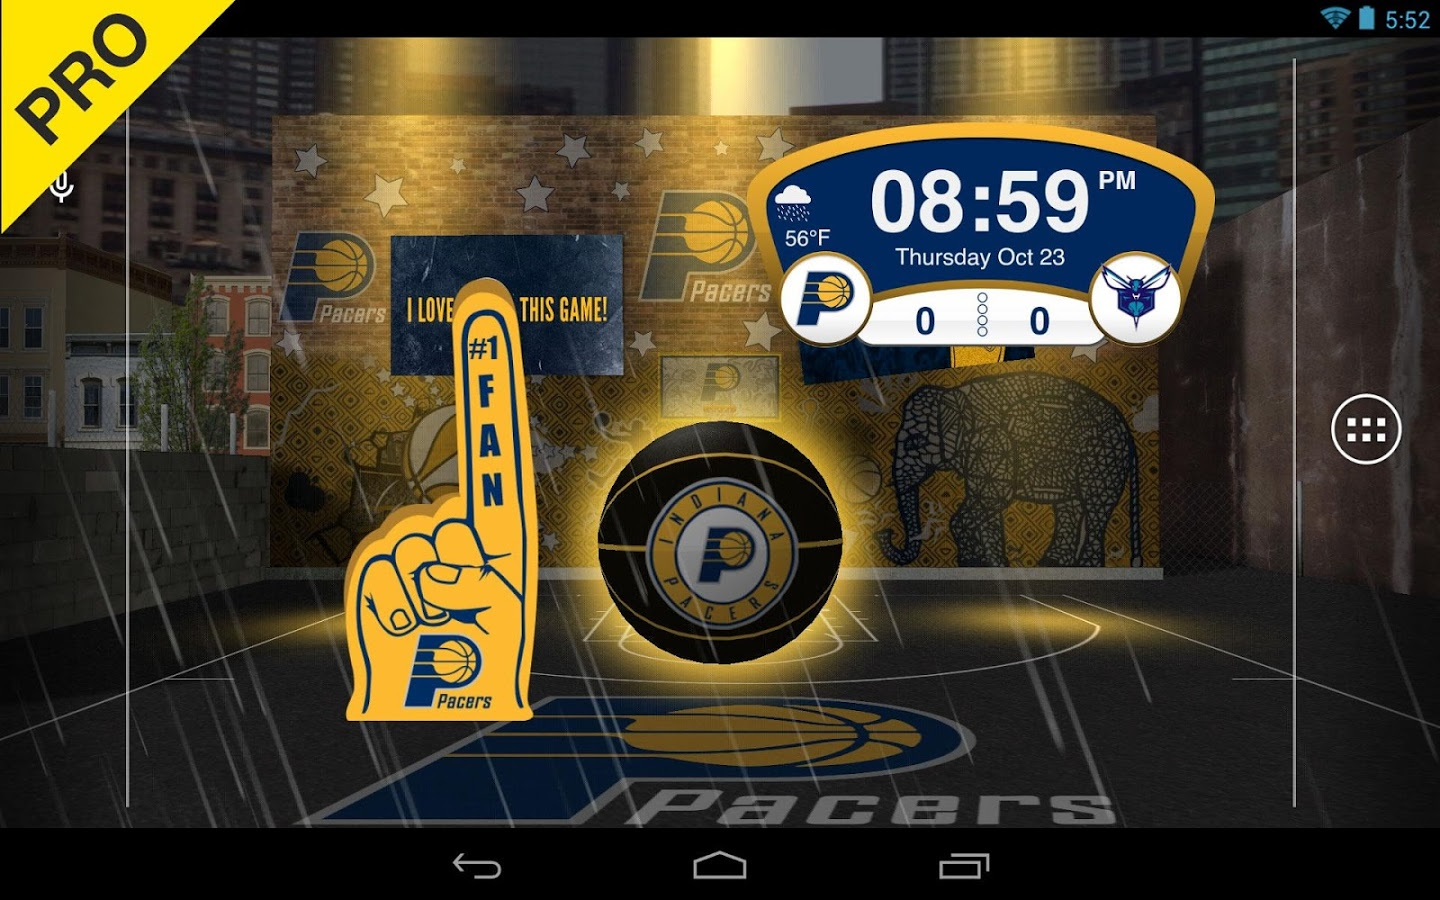 Nba 2016 Live Wallpaper Download Install Android Apps Cafe Bazaar